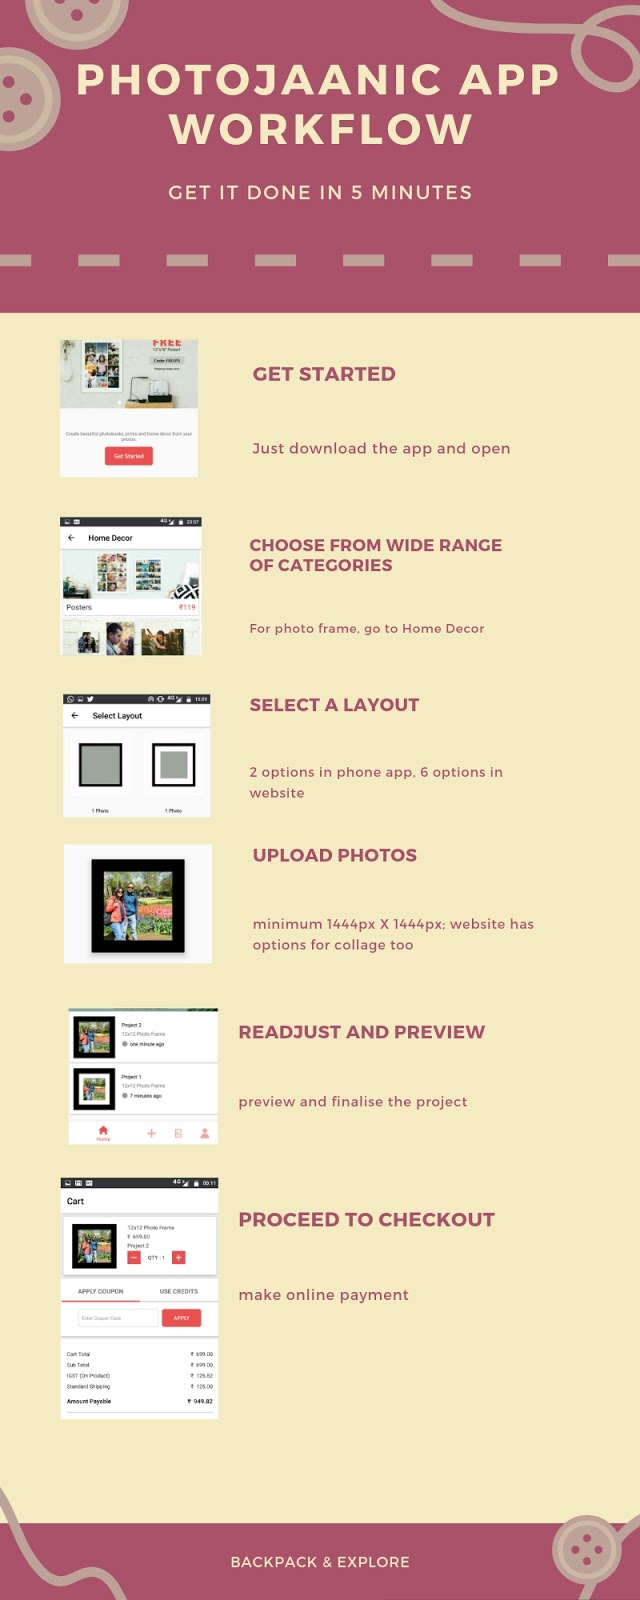 How to customize products and order through Photojaanic App